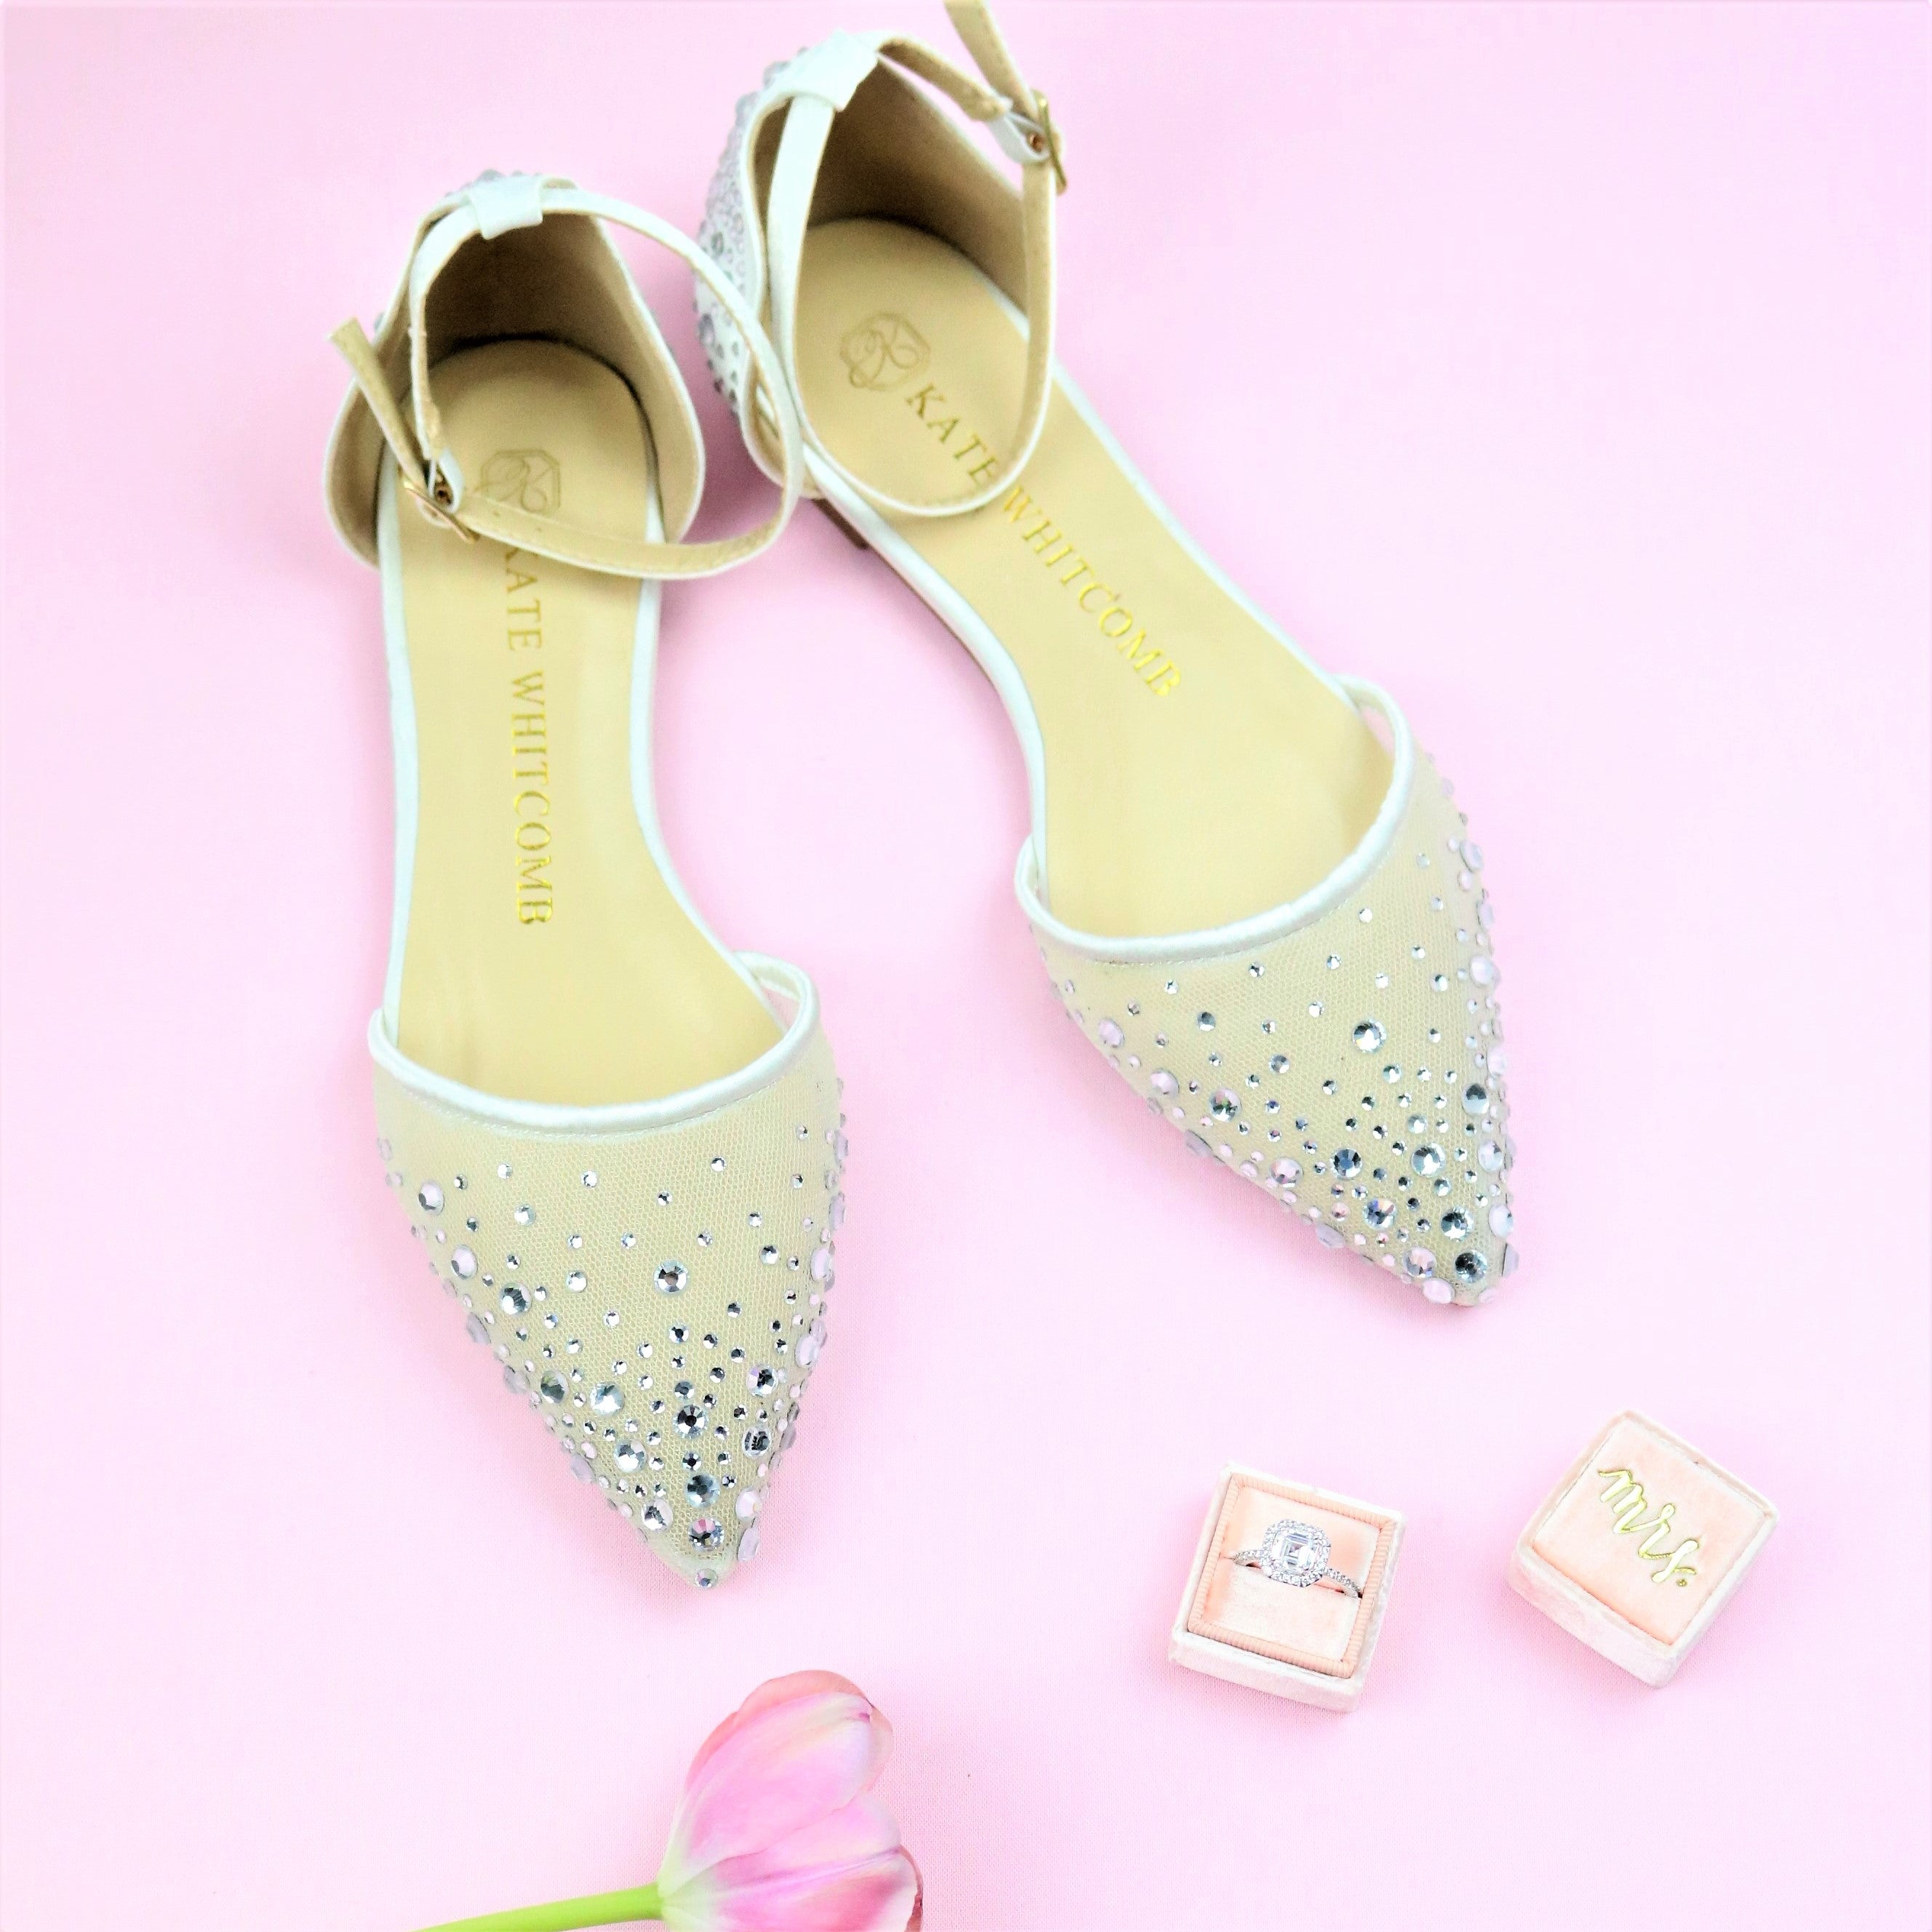 Cinderella Bridal Shoes and Dresses